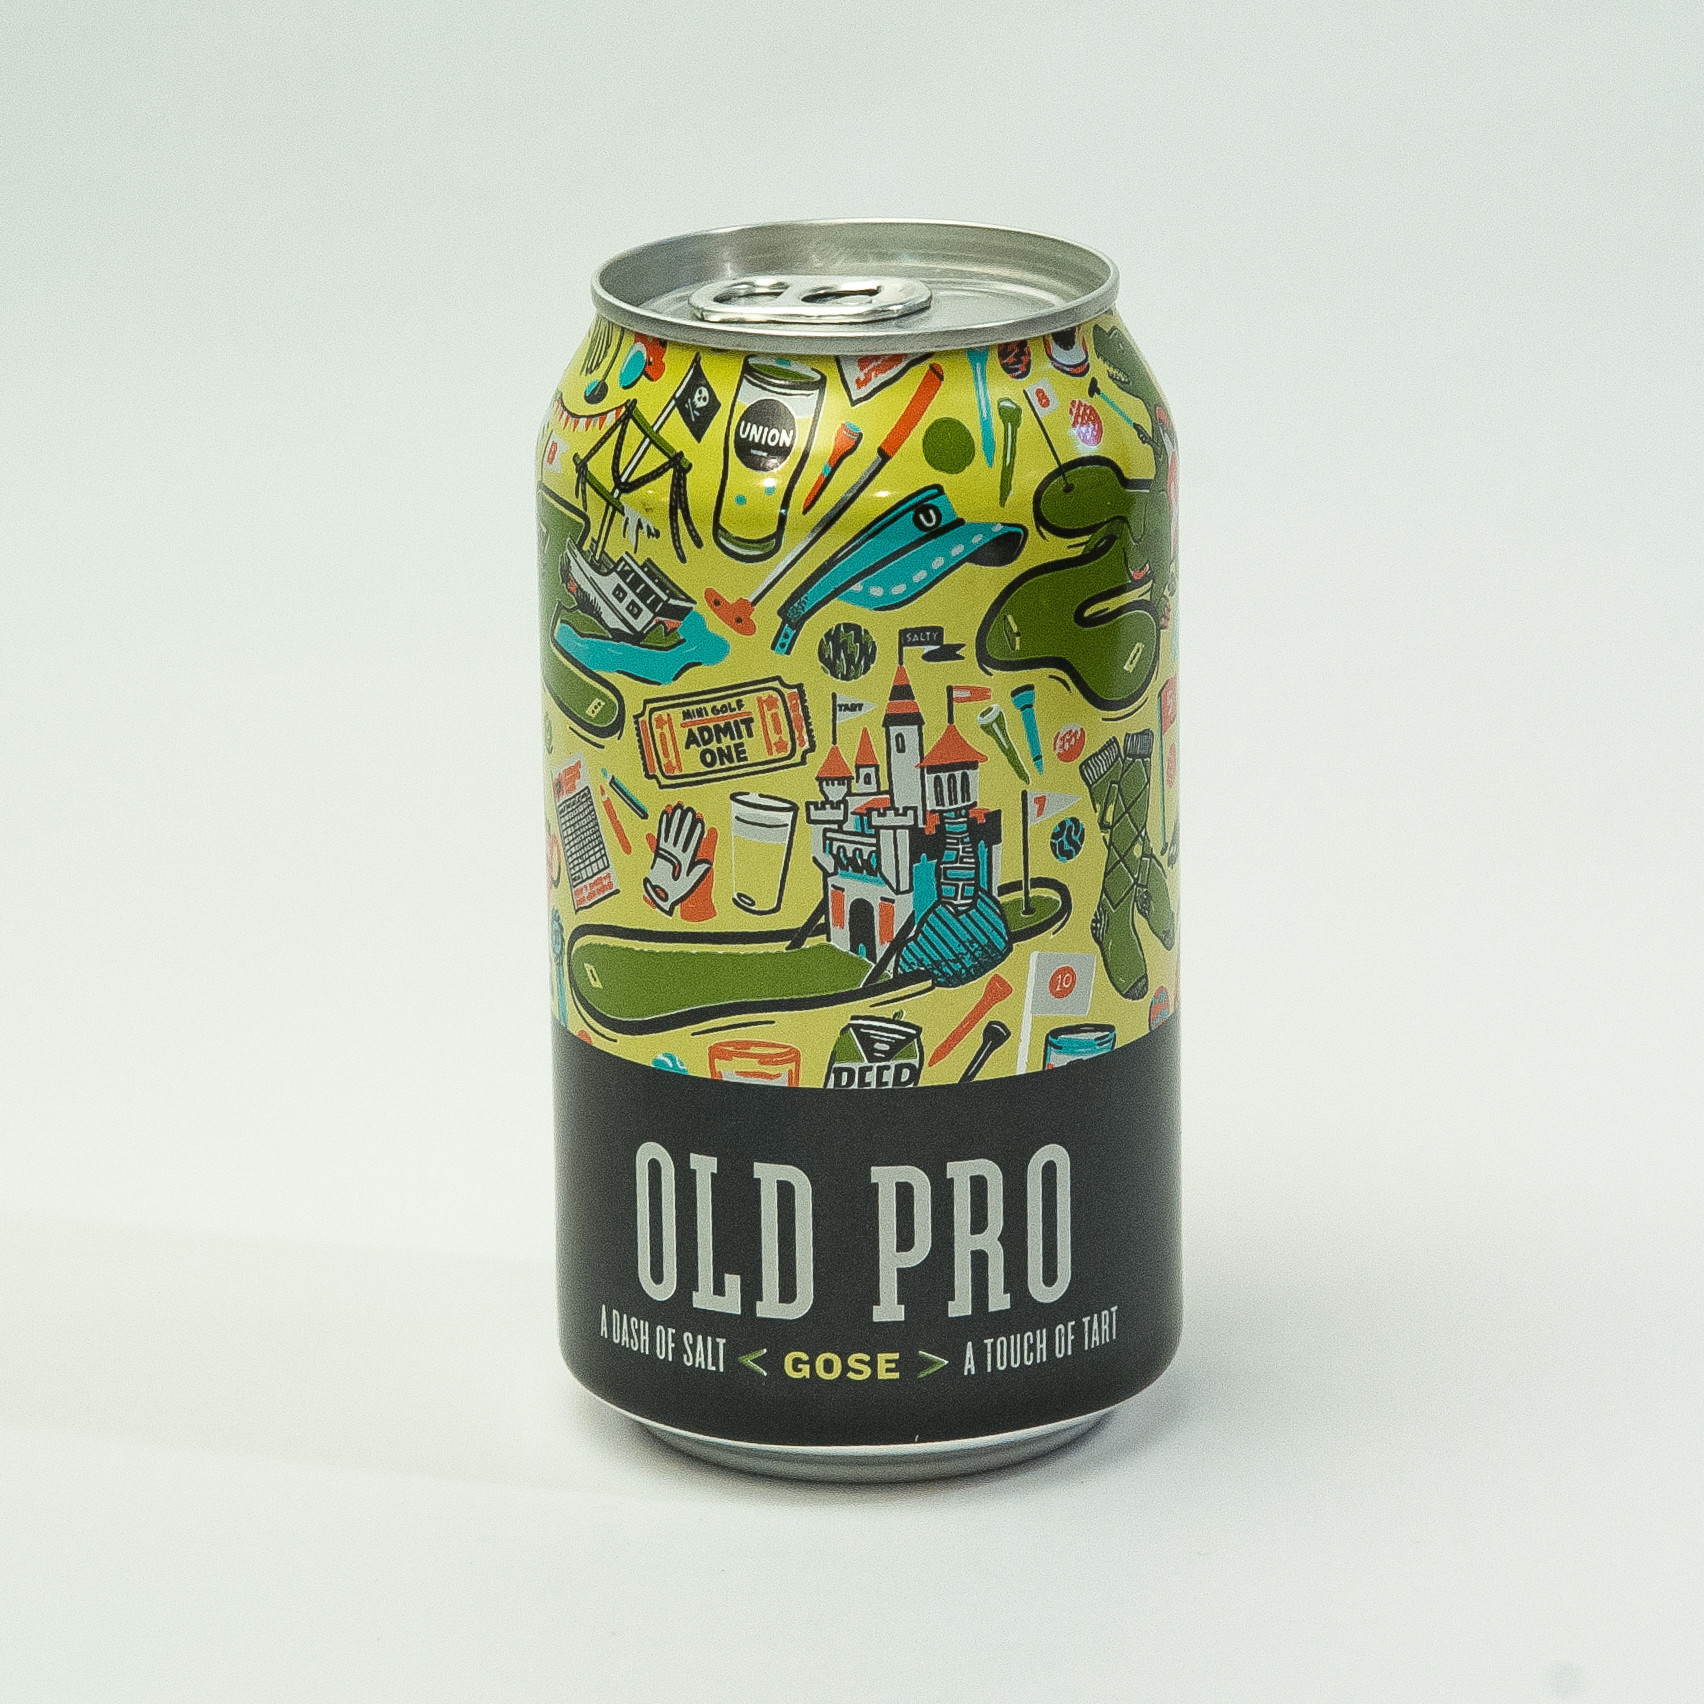 Baltimore 39 s union craft brewing releases sour ale can old for Union craft brewing baltimore md